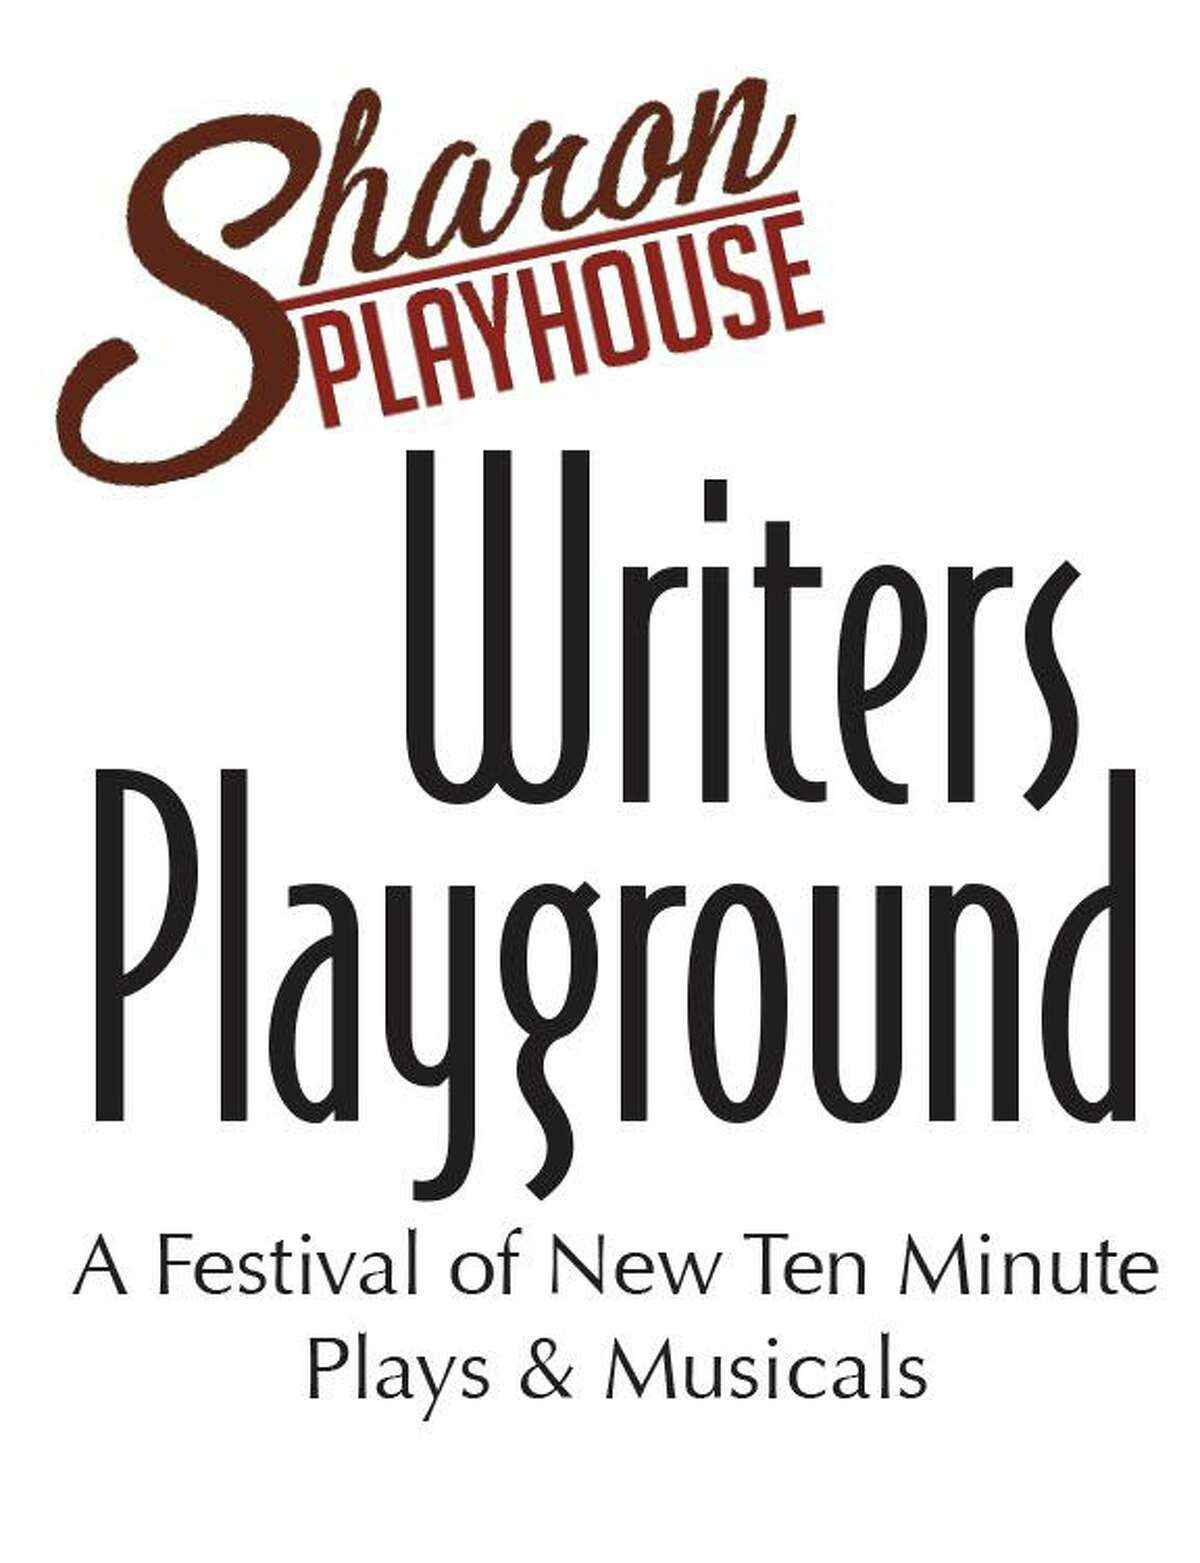 """The historic Sharon Playhouse has launched a festival of new ten minute plays and musicals: """"Sharon Playhouse Writers Playground."""""""